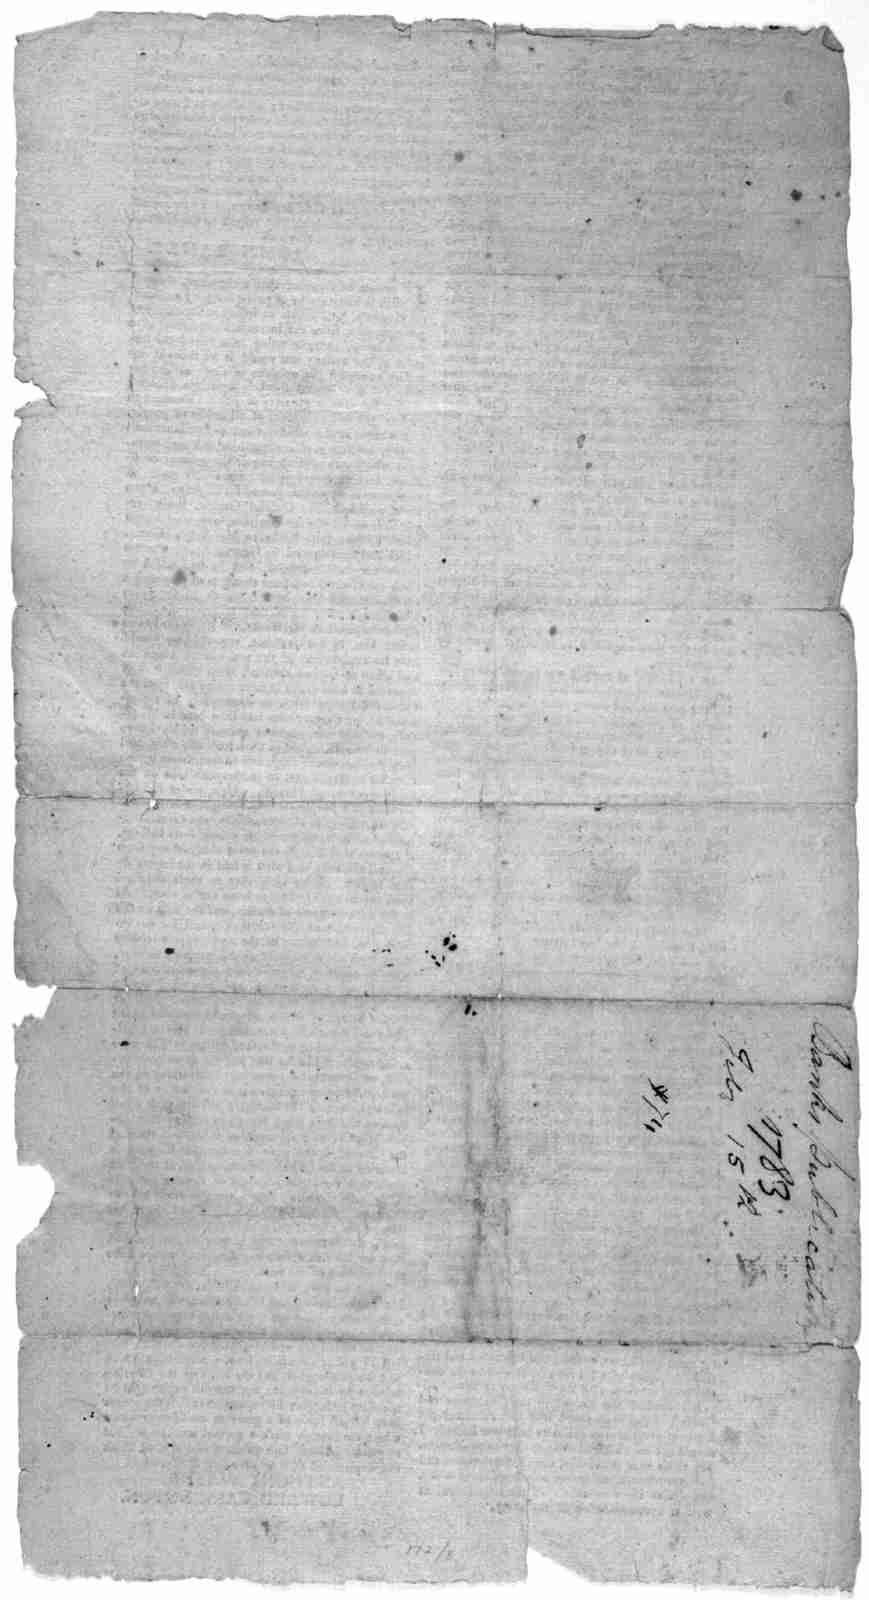 [Statement by John Banks regarding General Nathaniel Greene, beginning] Whatever opinions prevail with the public ... [Followed by statement by Anthony Wayne and Edward Carrington regarding Nathaniel Green] [Dated in manuscript. Feb. 15, 1783].